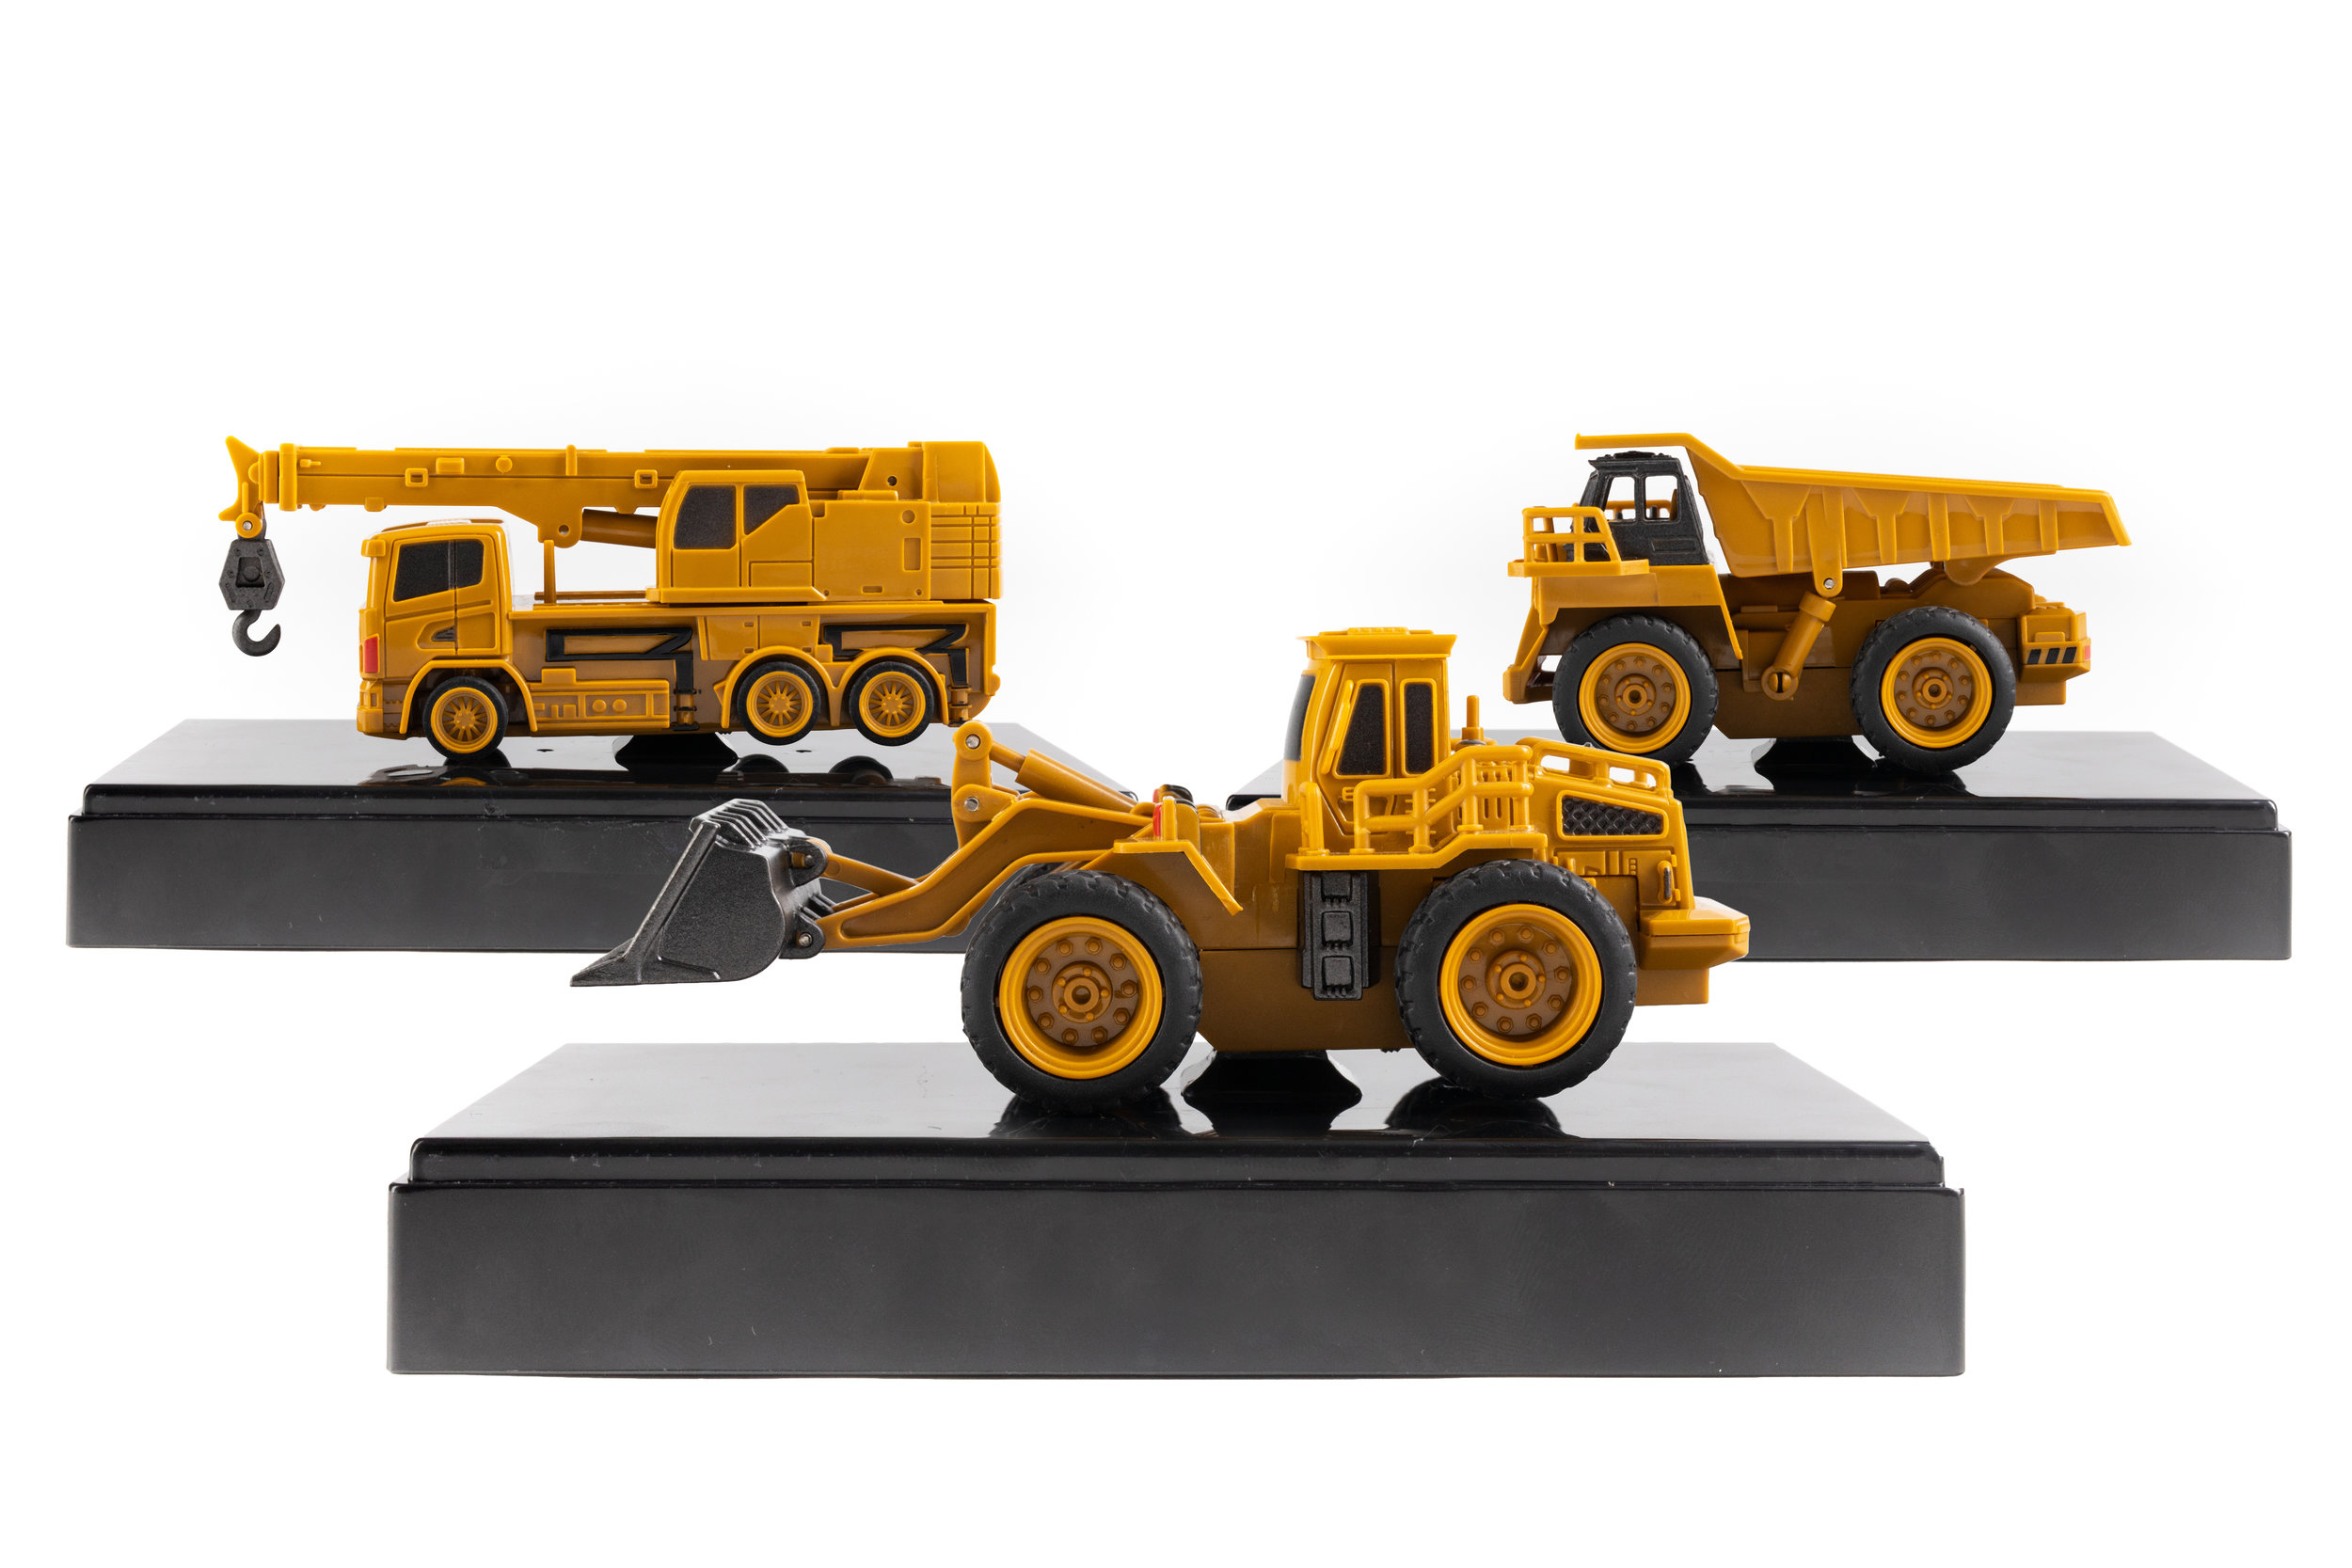 Included Display Stand - Each Wee Construction Vehicle comes with a display stand and protective plastic case! Remote can be conveniently stored under the display stand.